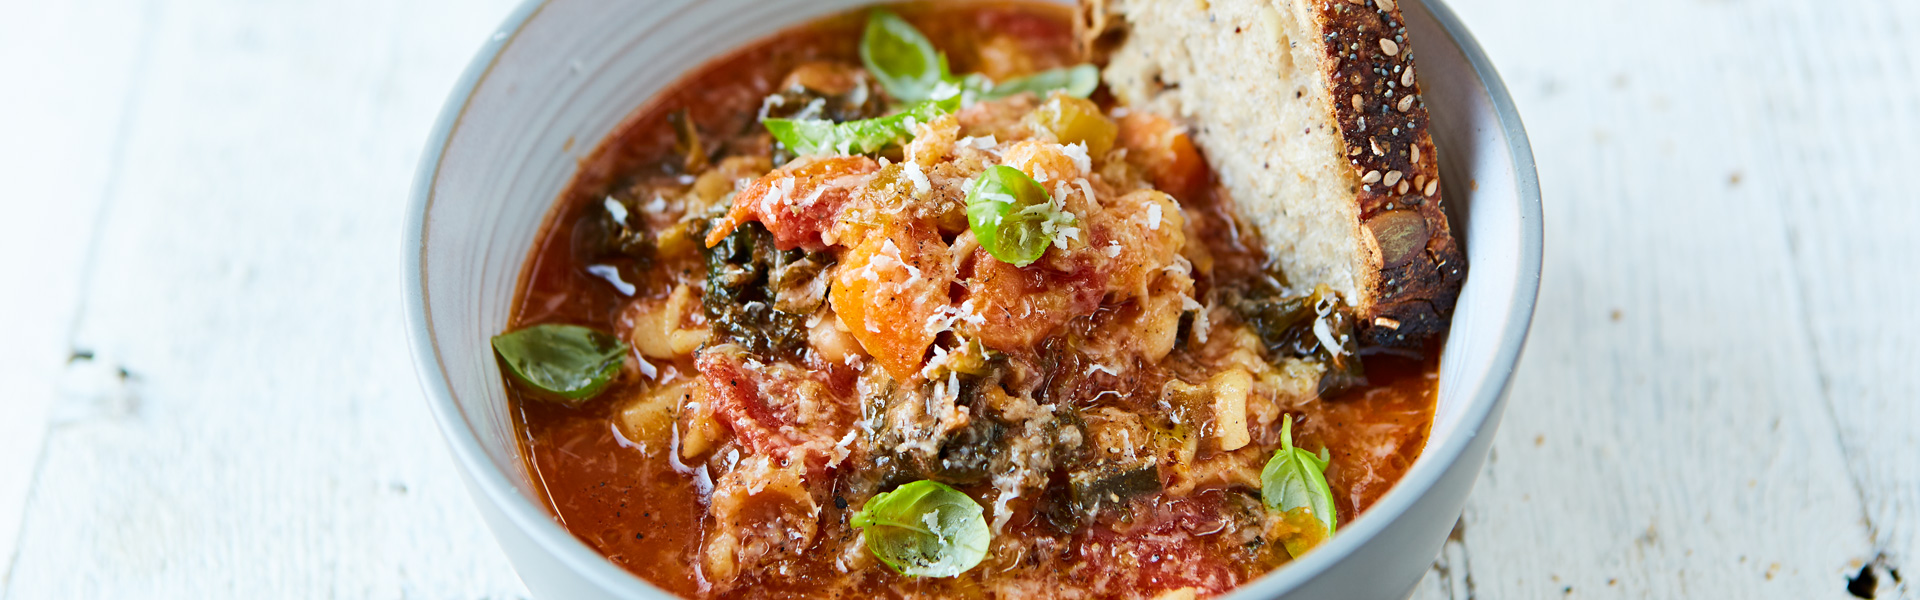 Jamie Oliver: Minestrone Soup Recipe